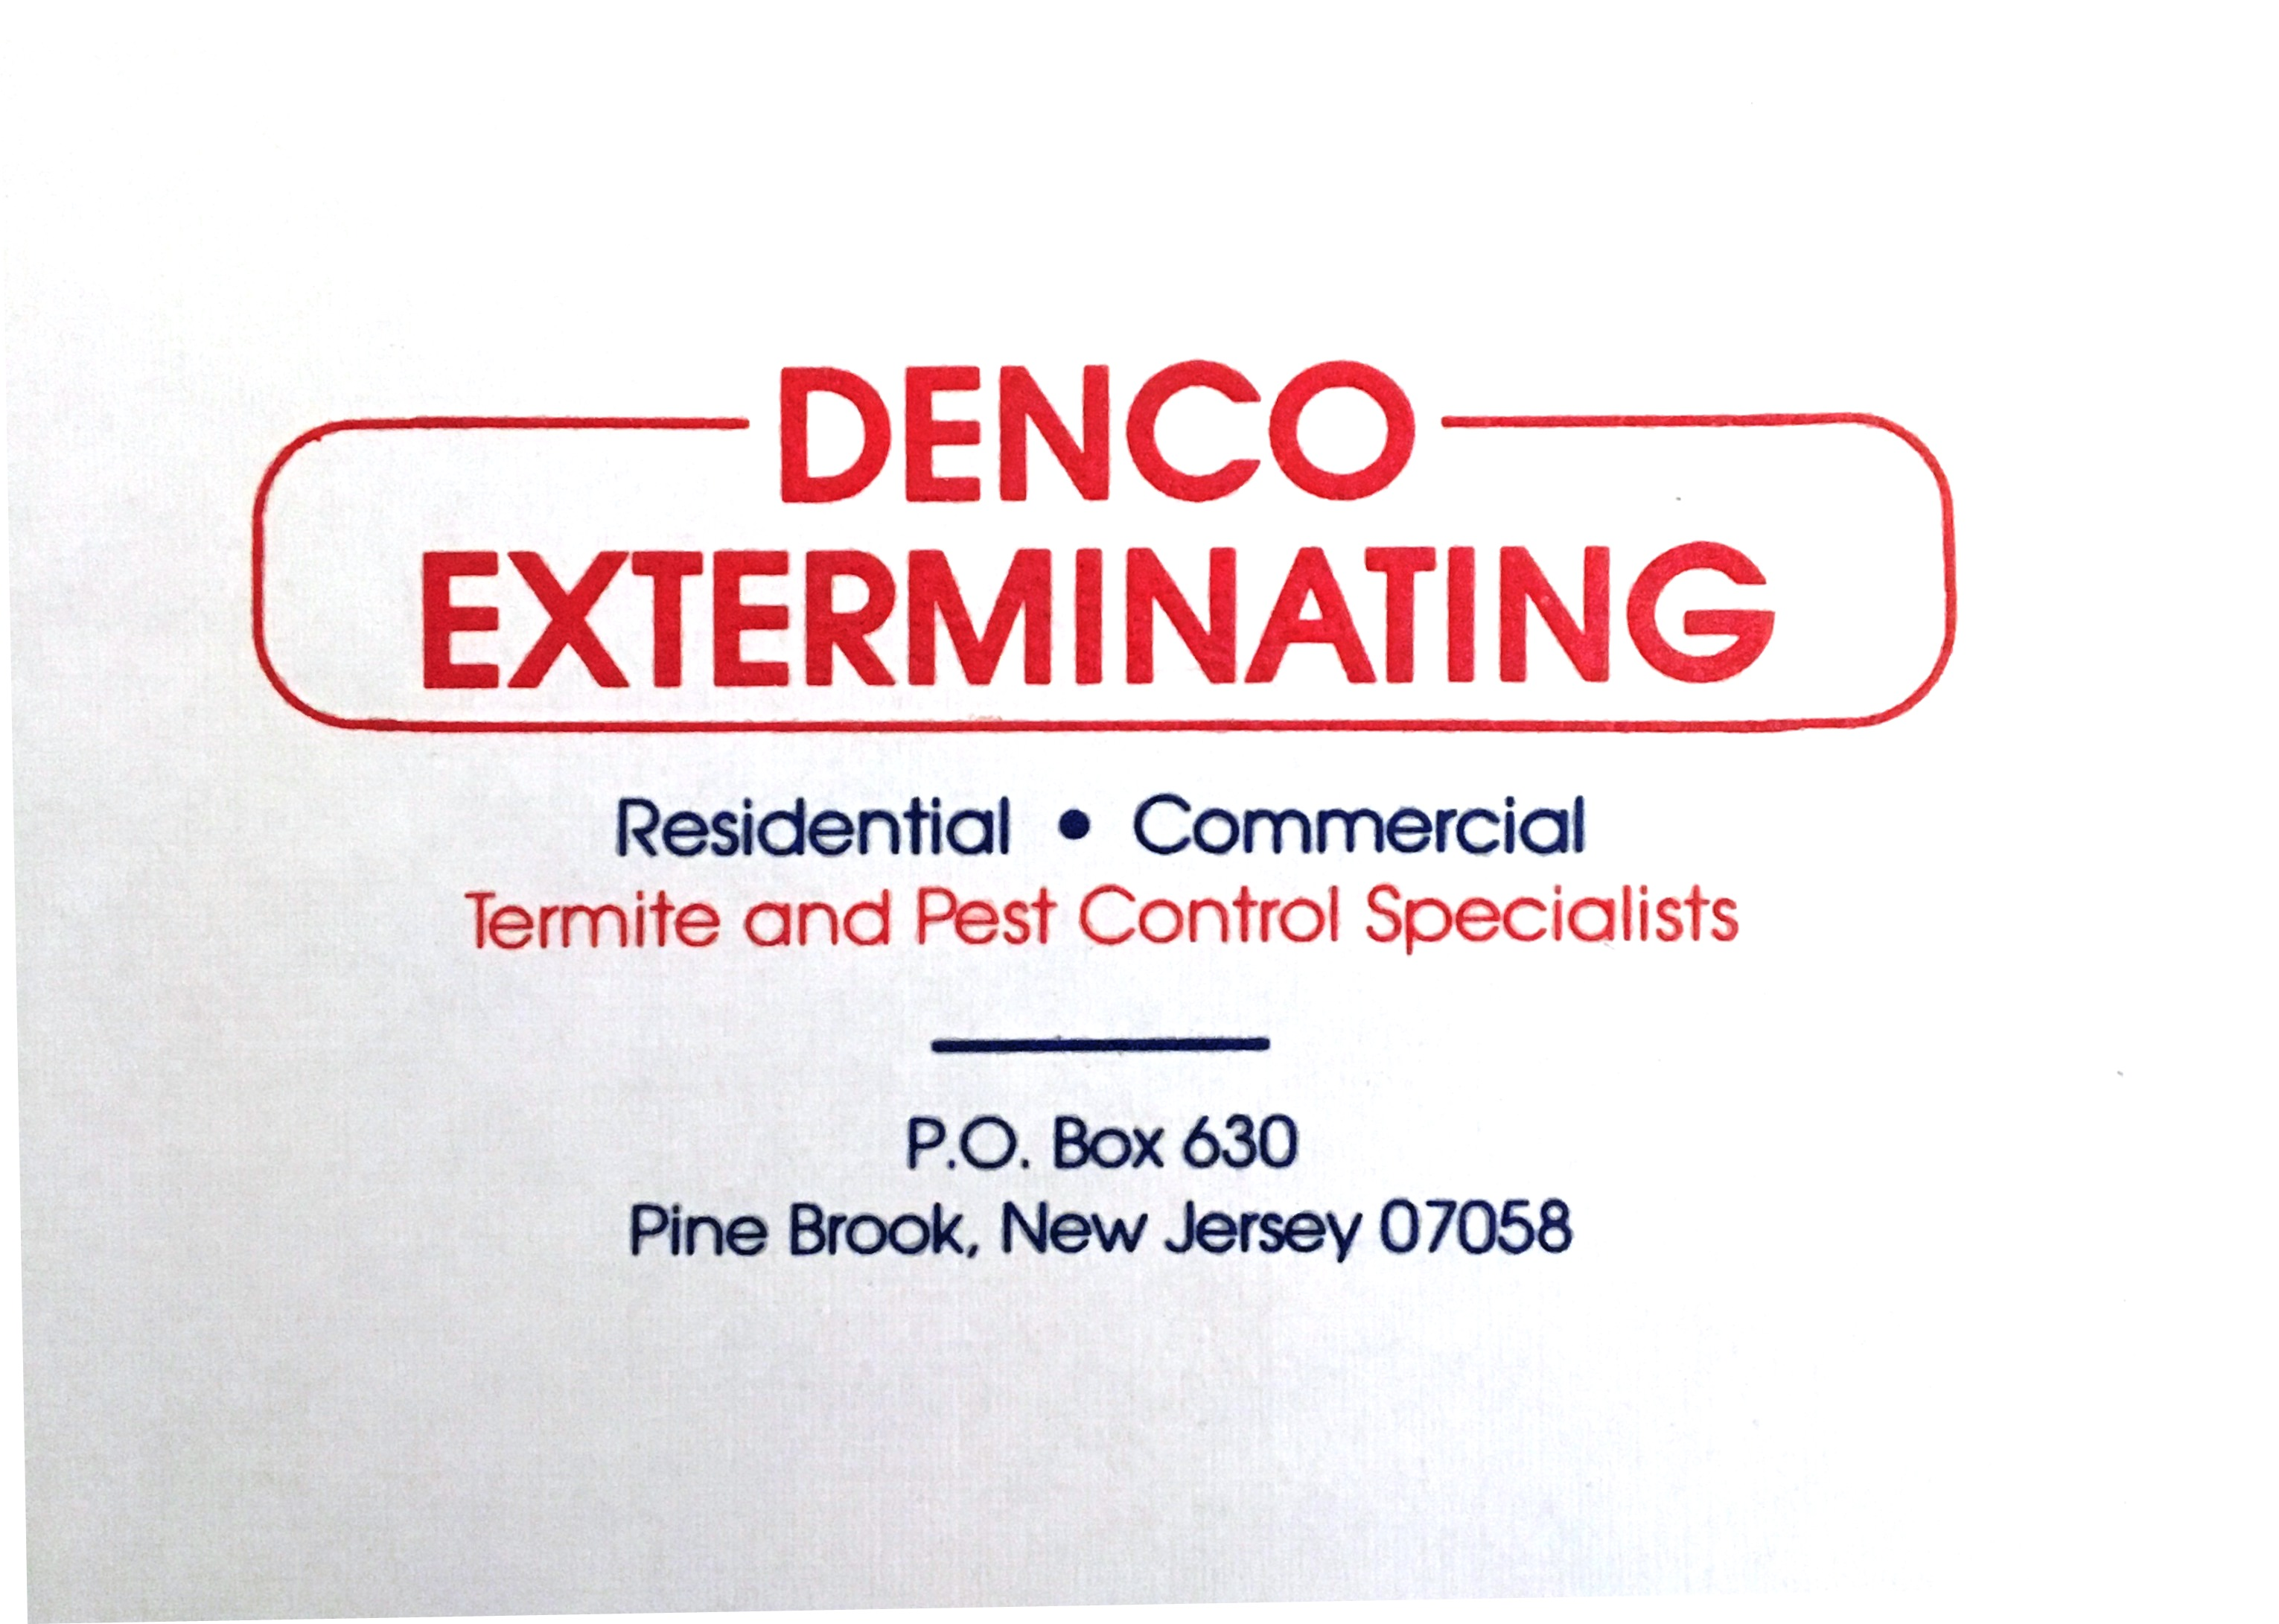 Denco Exterminating Co Inc.